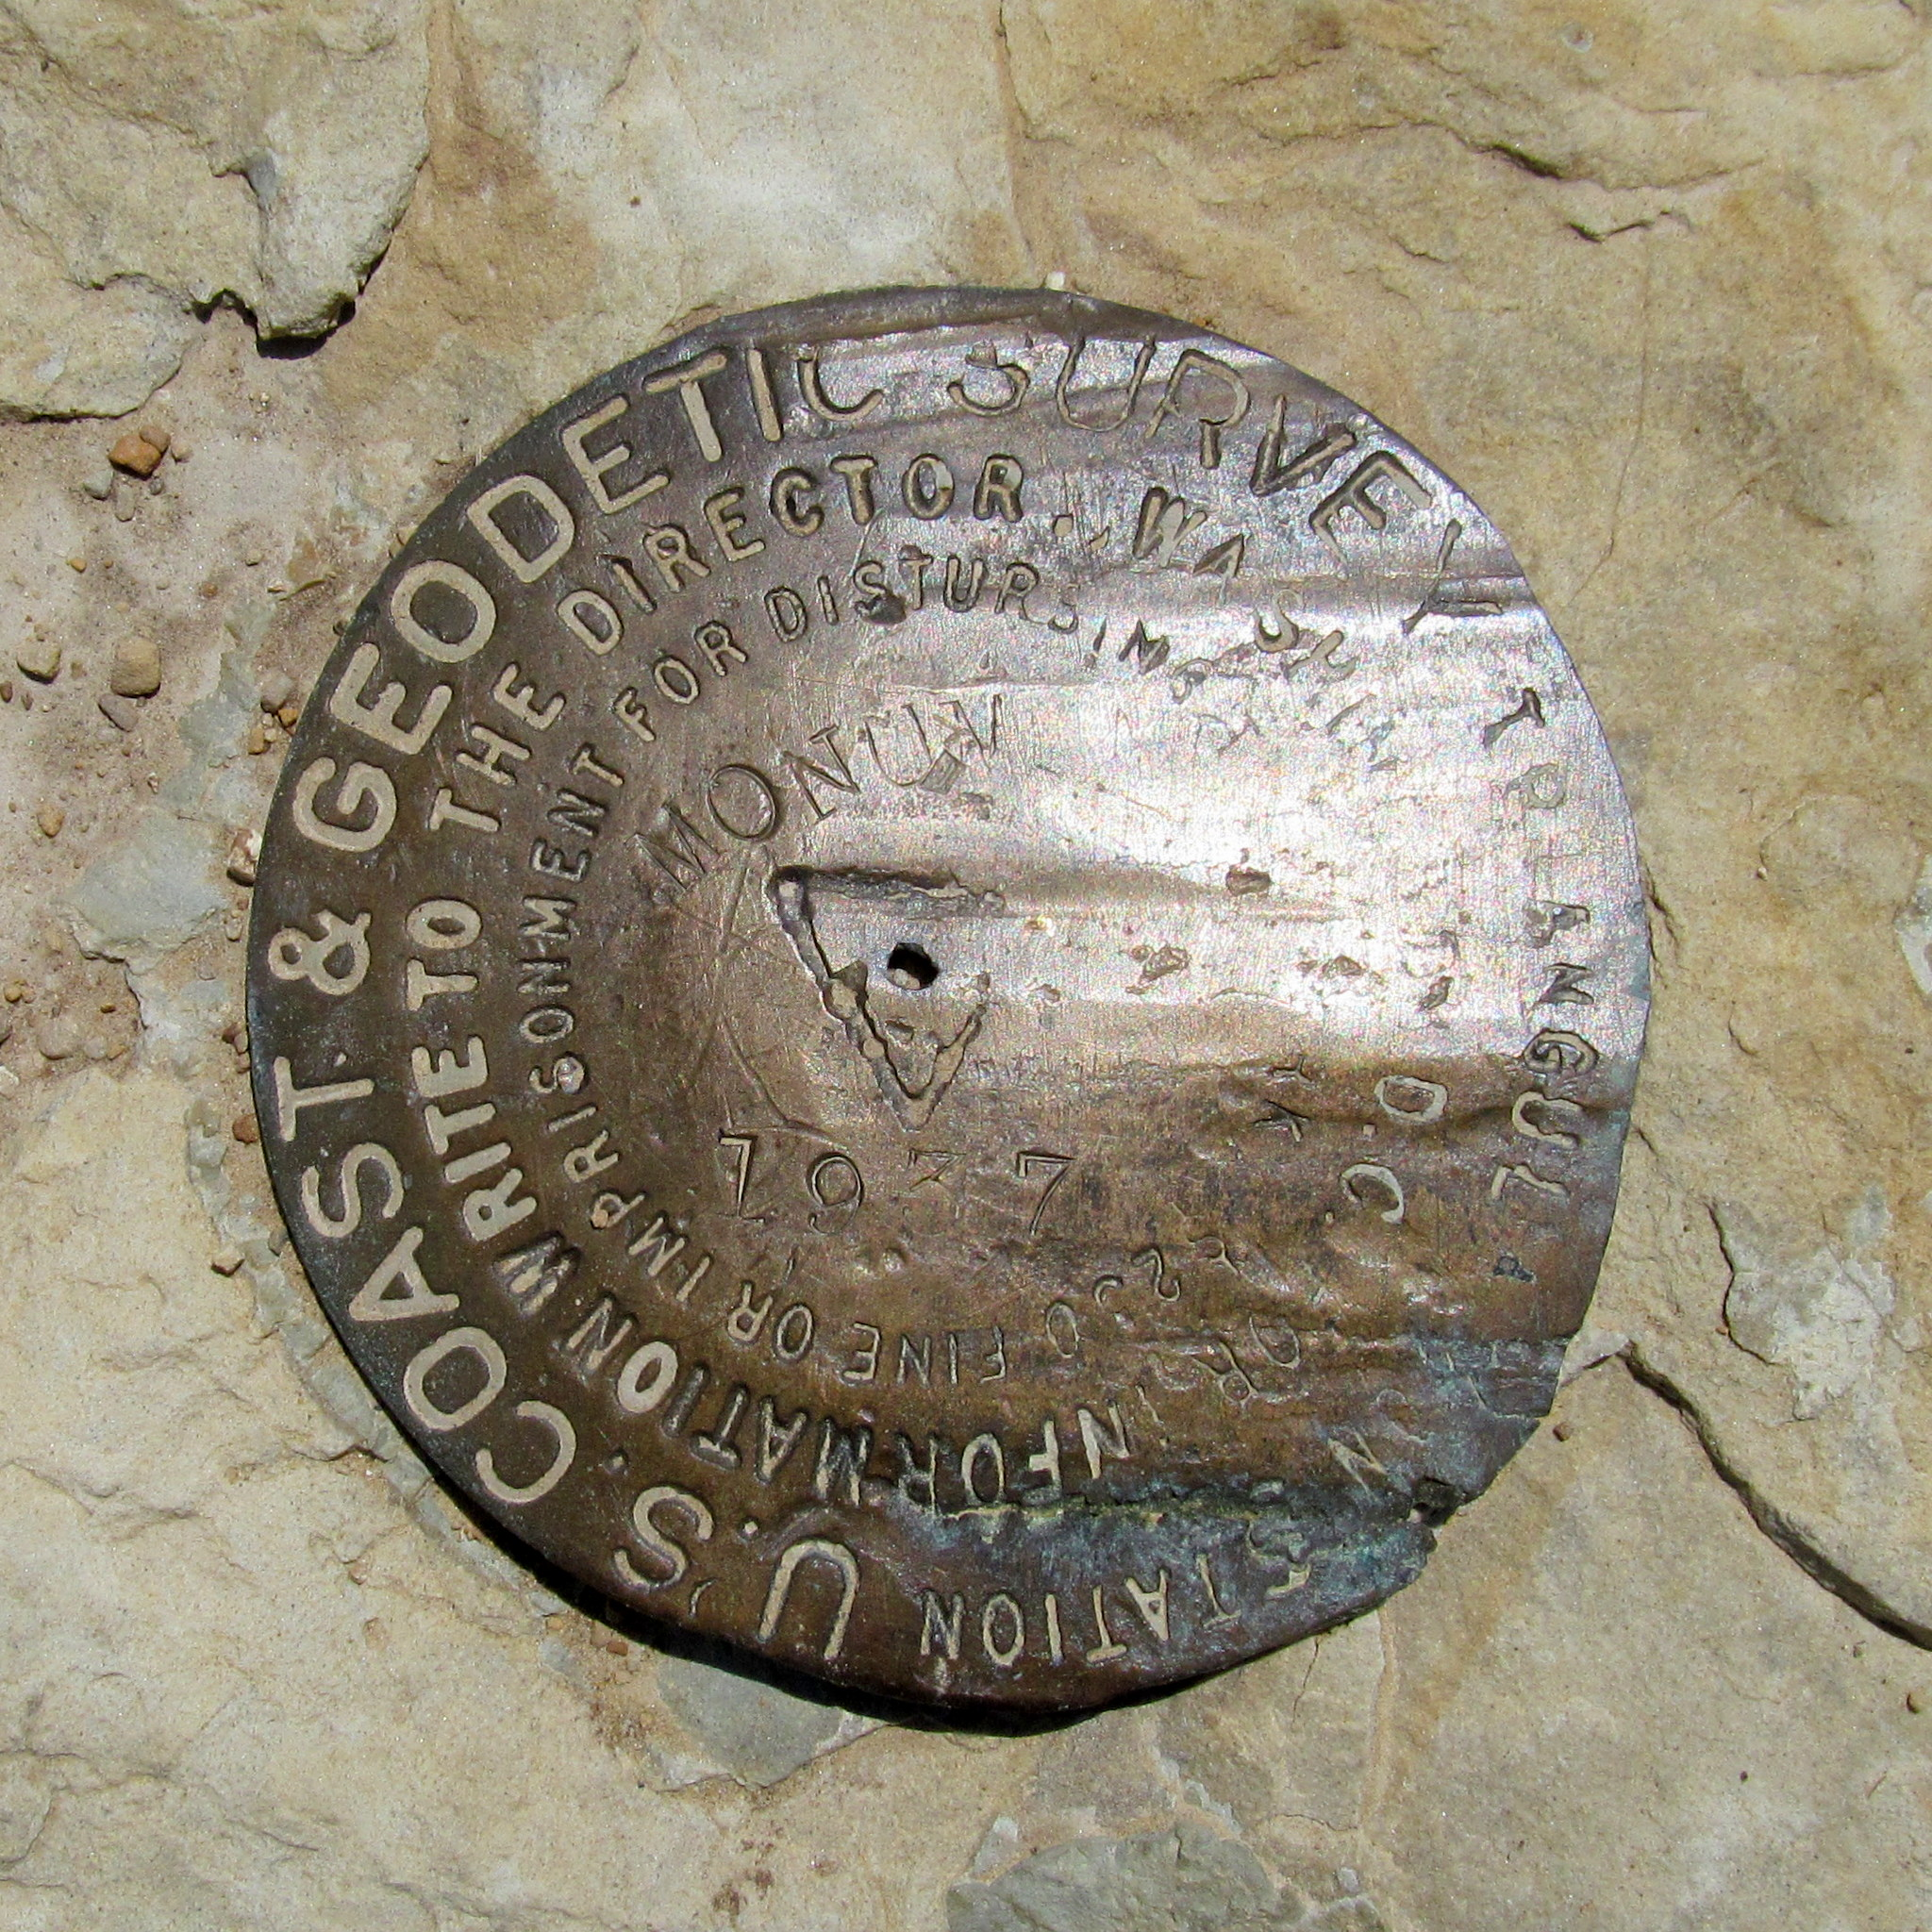 Photo: 1937 Monument Peak survey marker